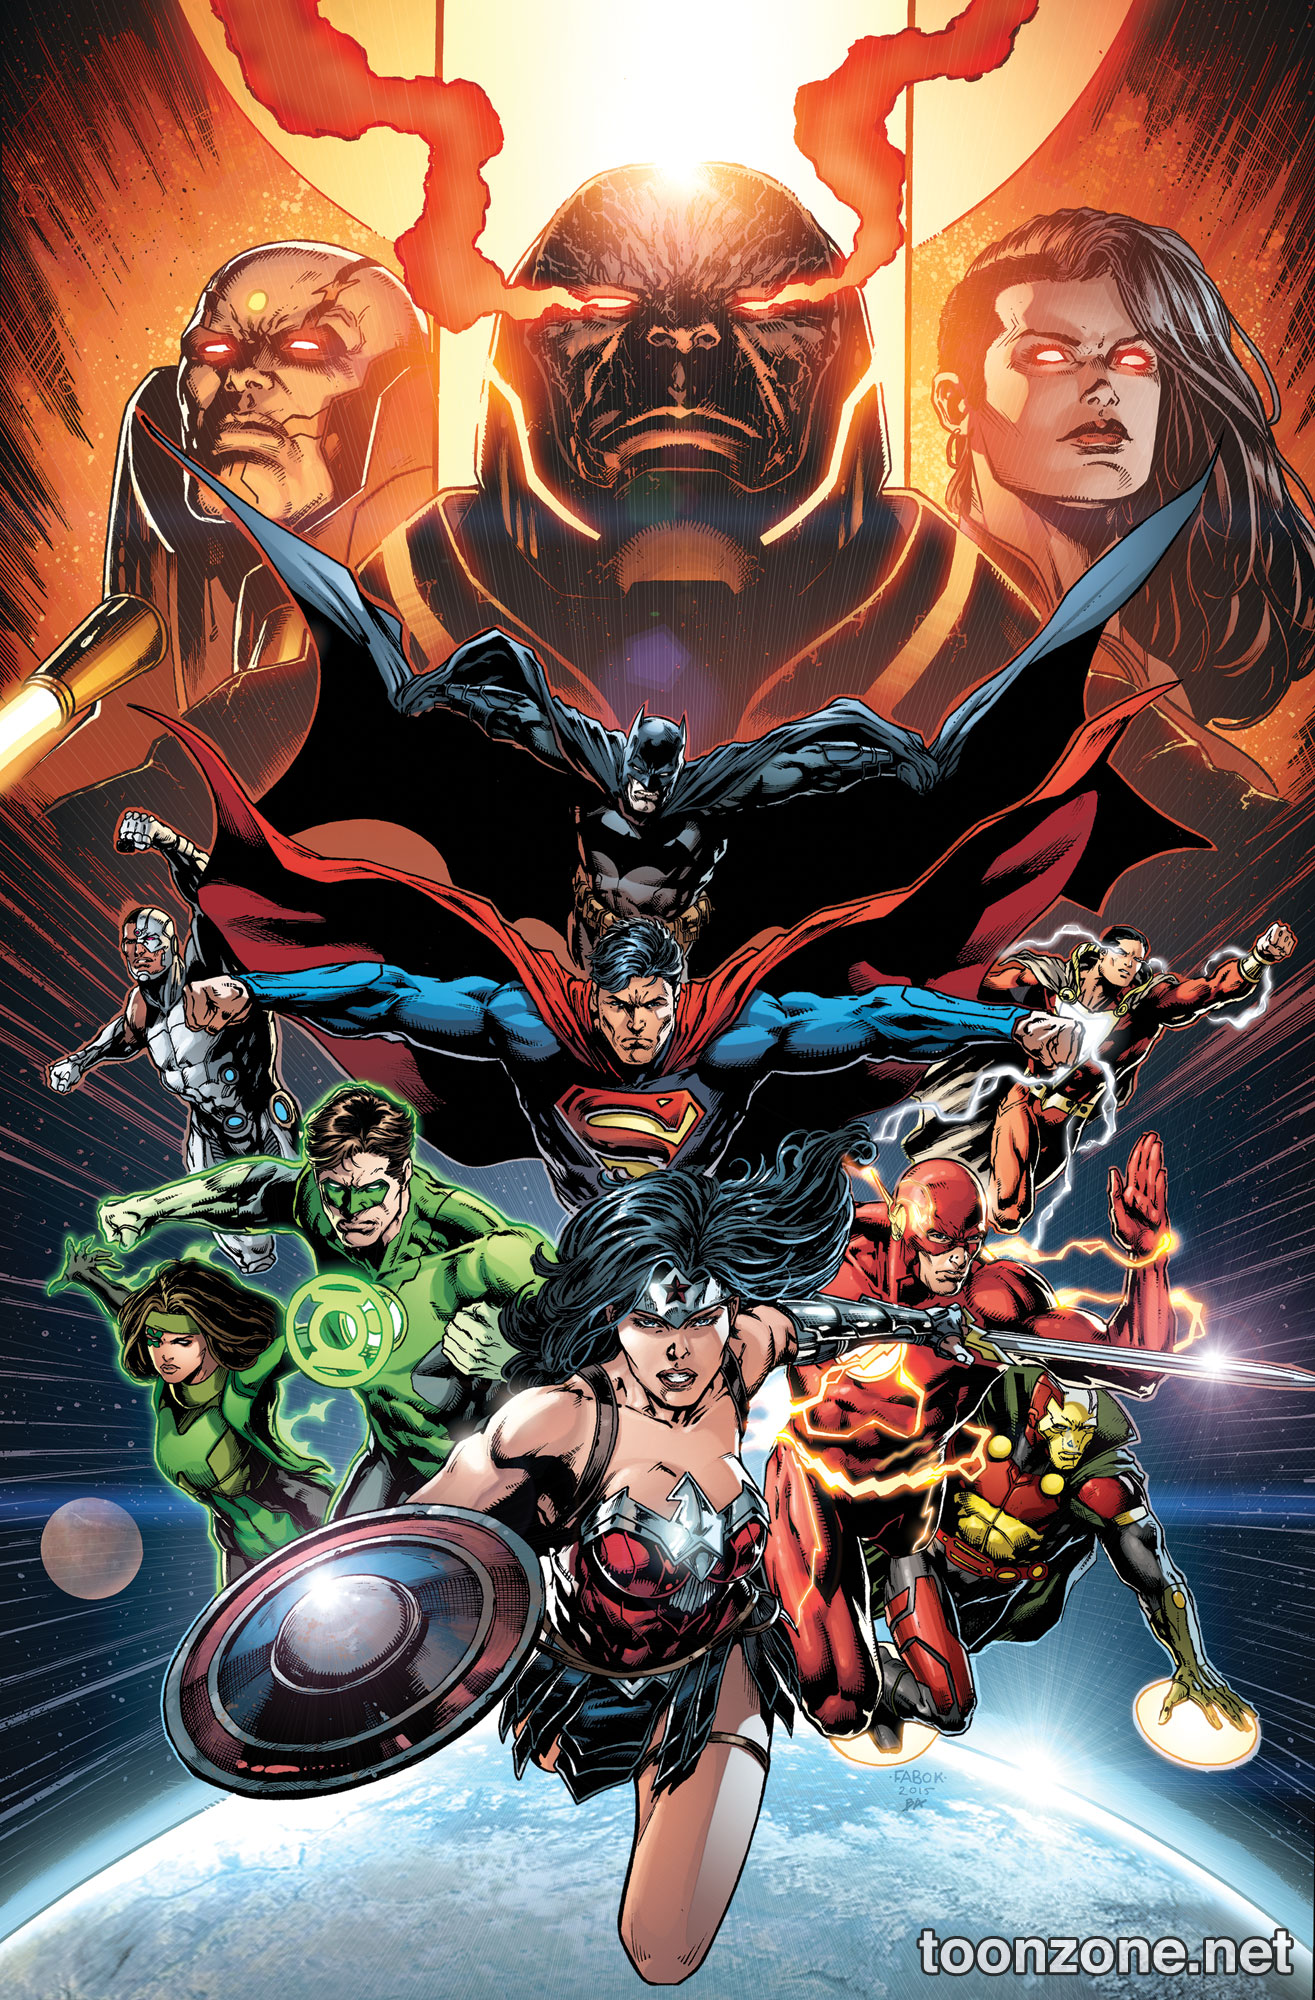 JUSTICE LEAGUE VOL. 8: THE DARKSEID WAR PART 2 HC Cover Art On Sale Jul  2016 - DC Comics Solicitations - Toonzone Comics